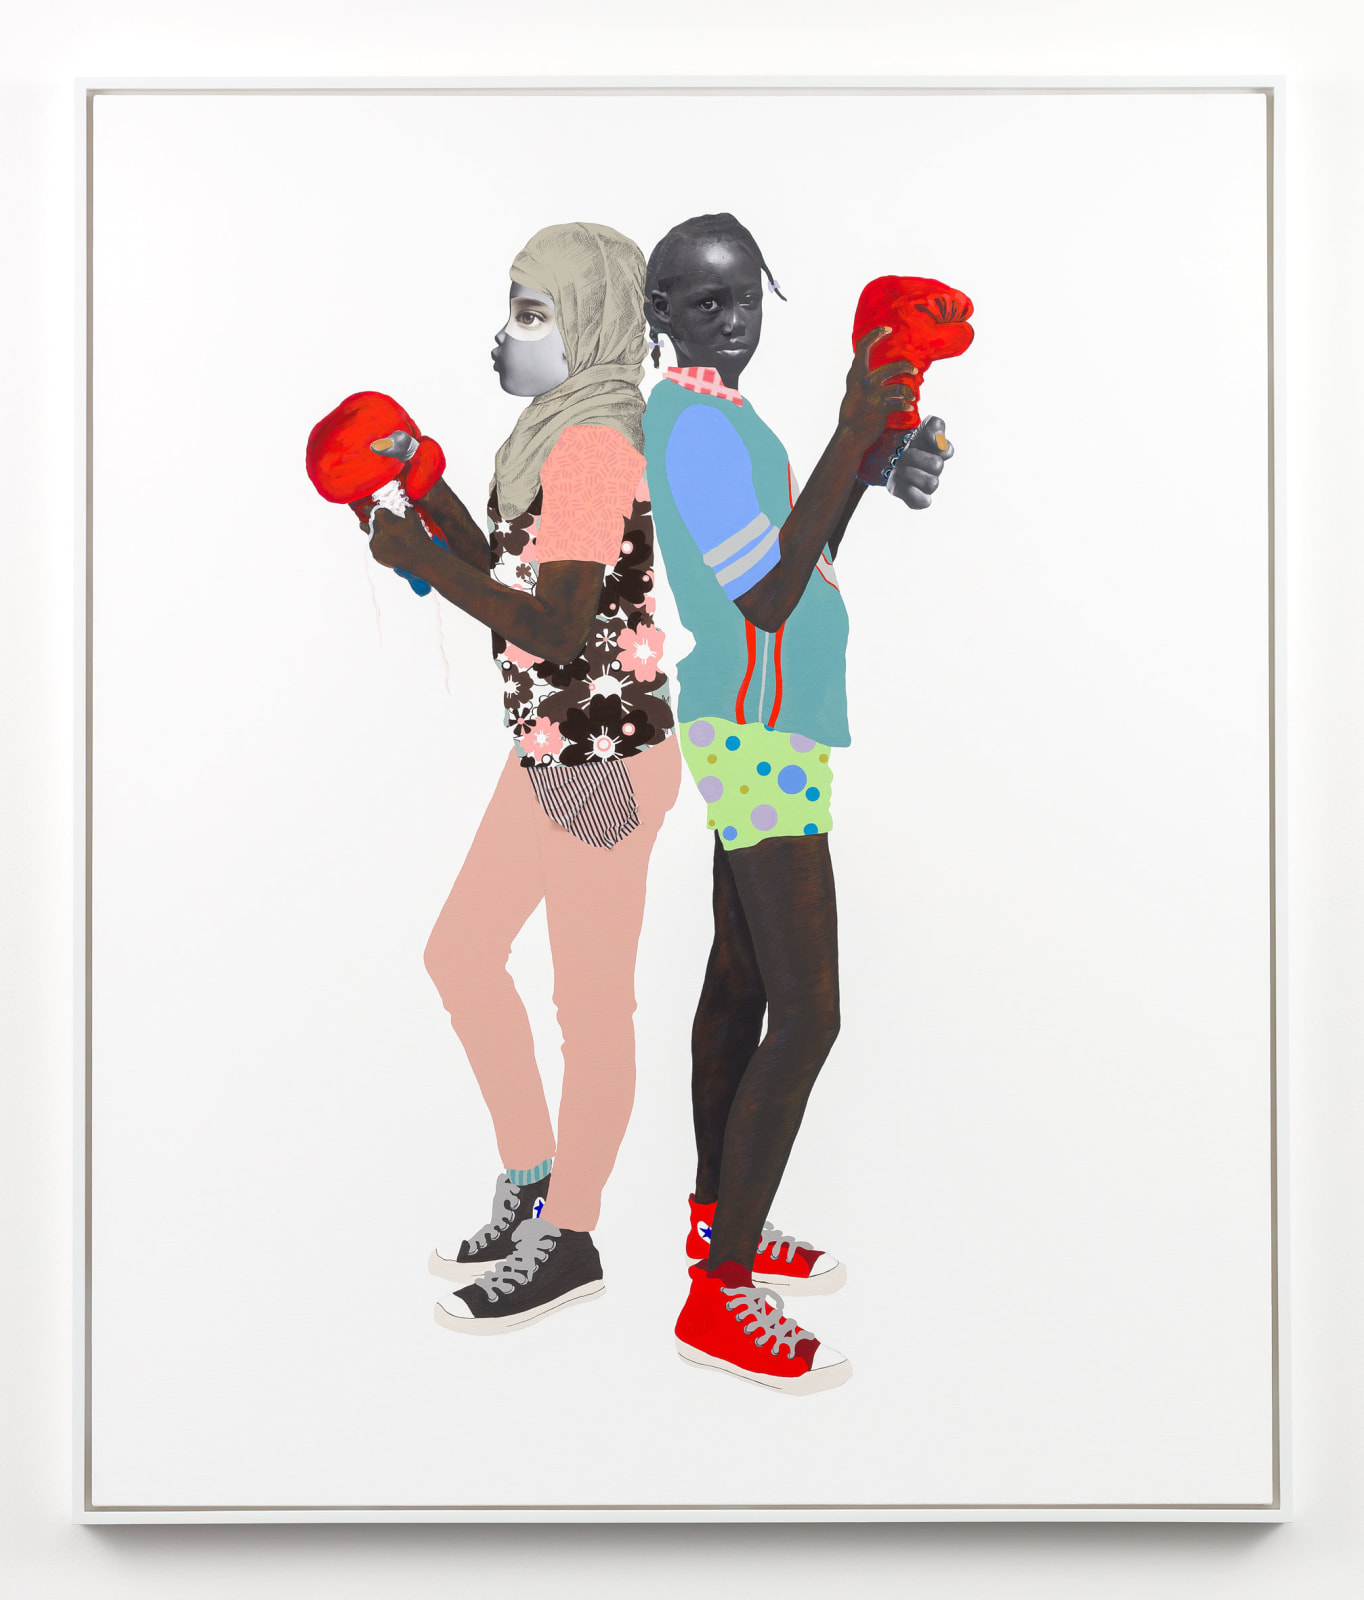 "<div class=""artist"">Deborah Roberts, 'Red, white and blue', 2018, Collection of SFMOMA, San Francisco, CA.</div>"